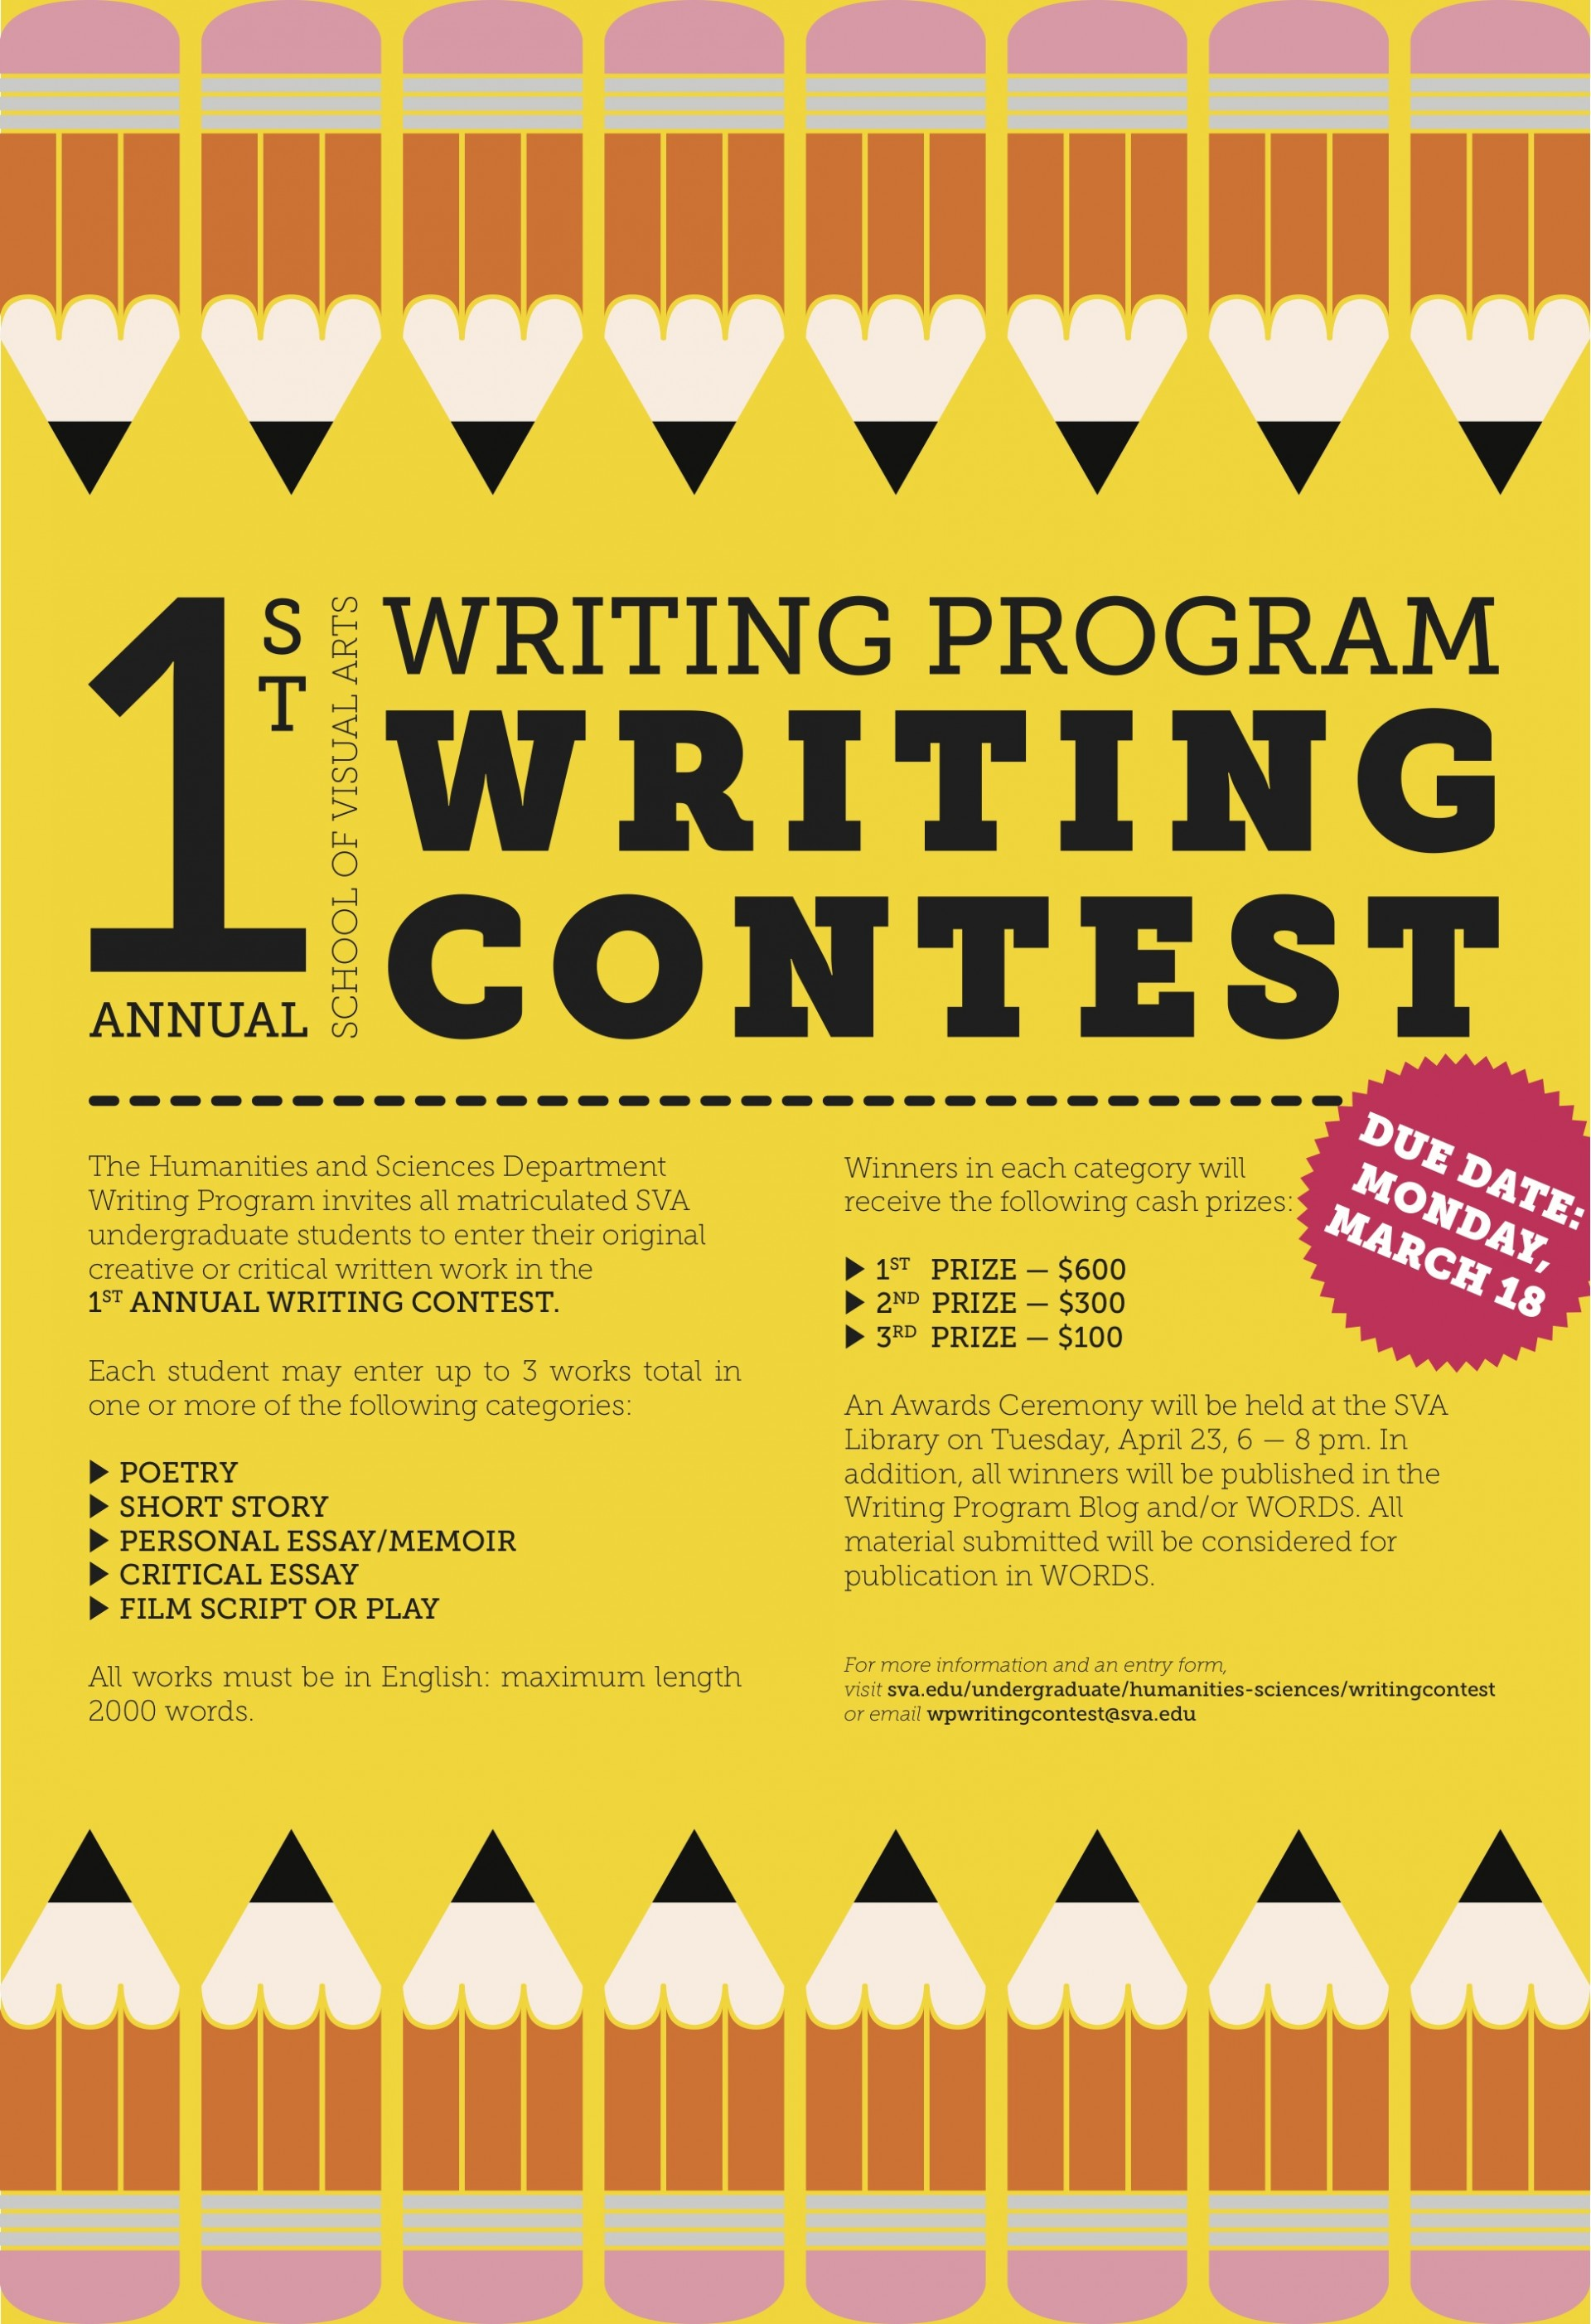 010 Essay Writing Blog 1st Annual Sva Program Contest Criteria Objectives Rubrics Tips Philippines For Nutrition Month Guidelines Mechanics Incredible Competition College Students By Essayhub Sample 1920